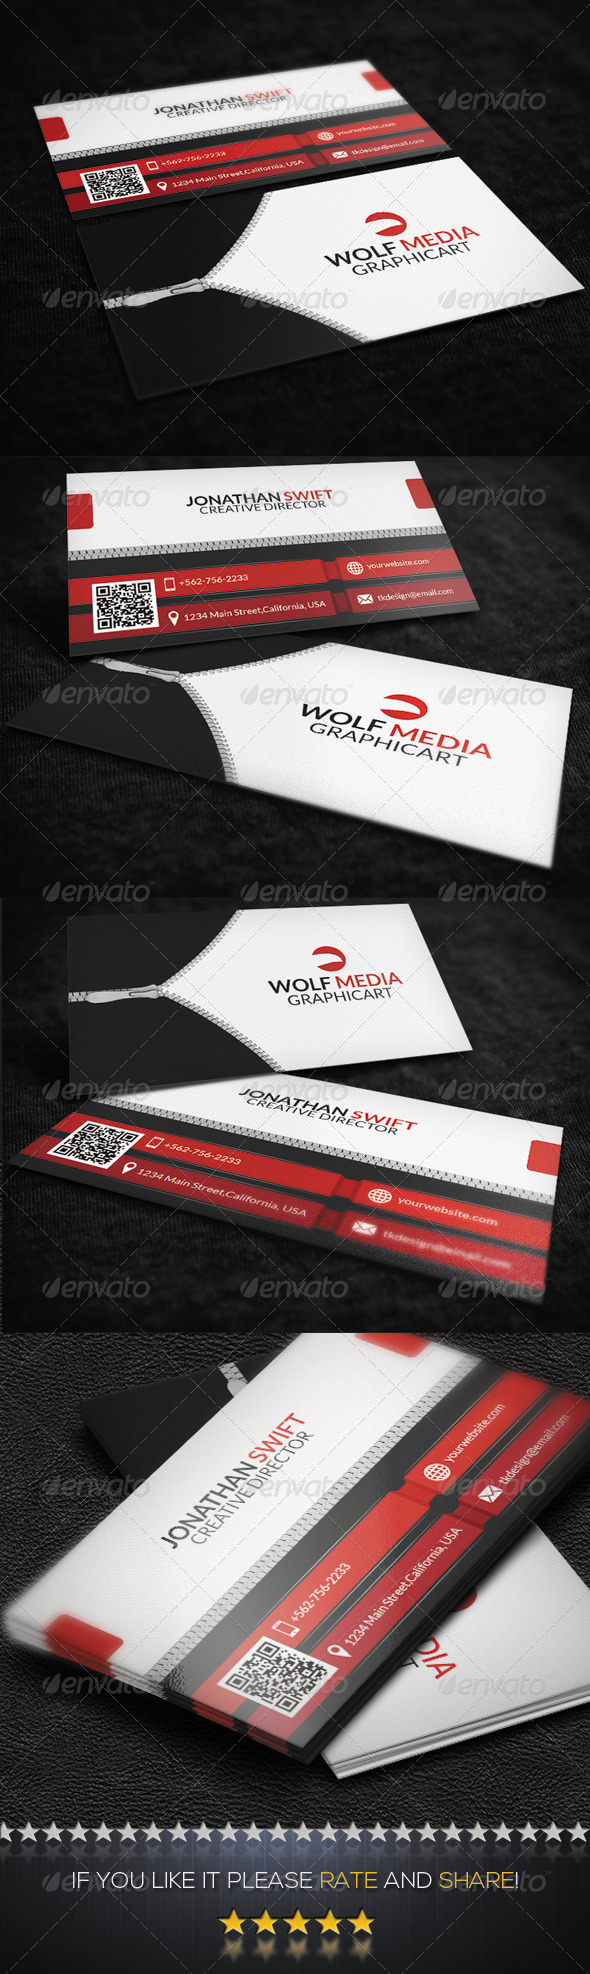 GraphicRiver Creative Corporate Business Card 8523713